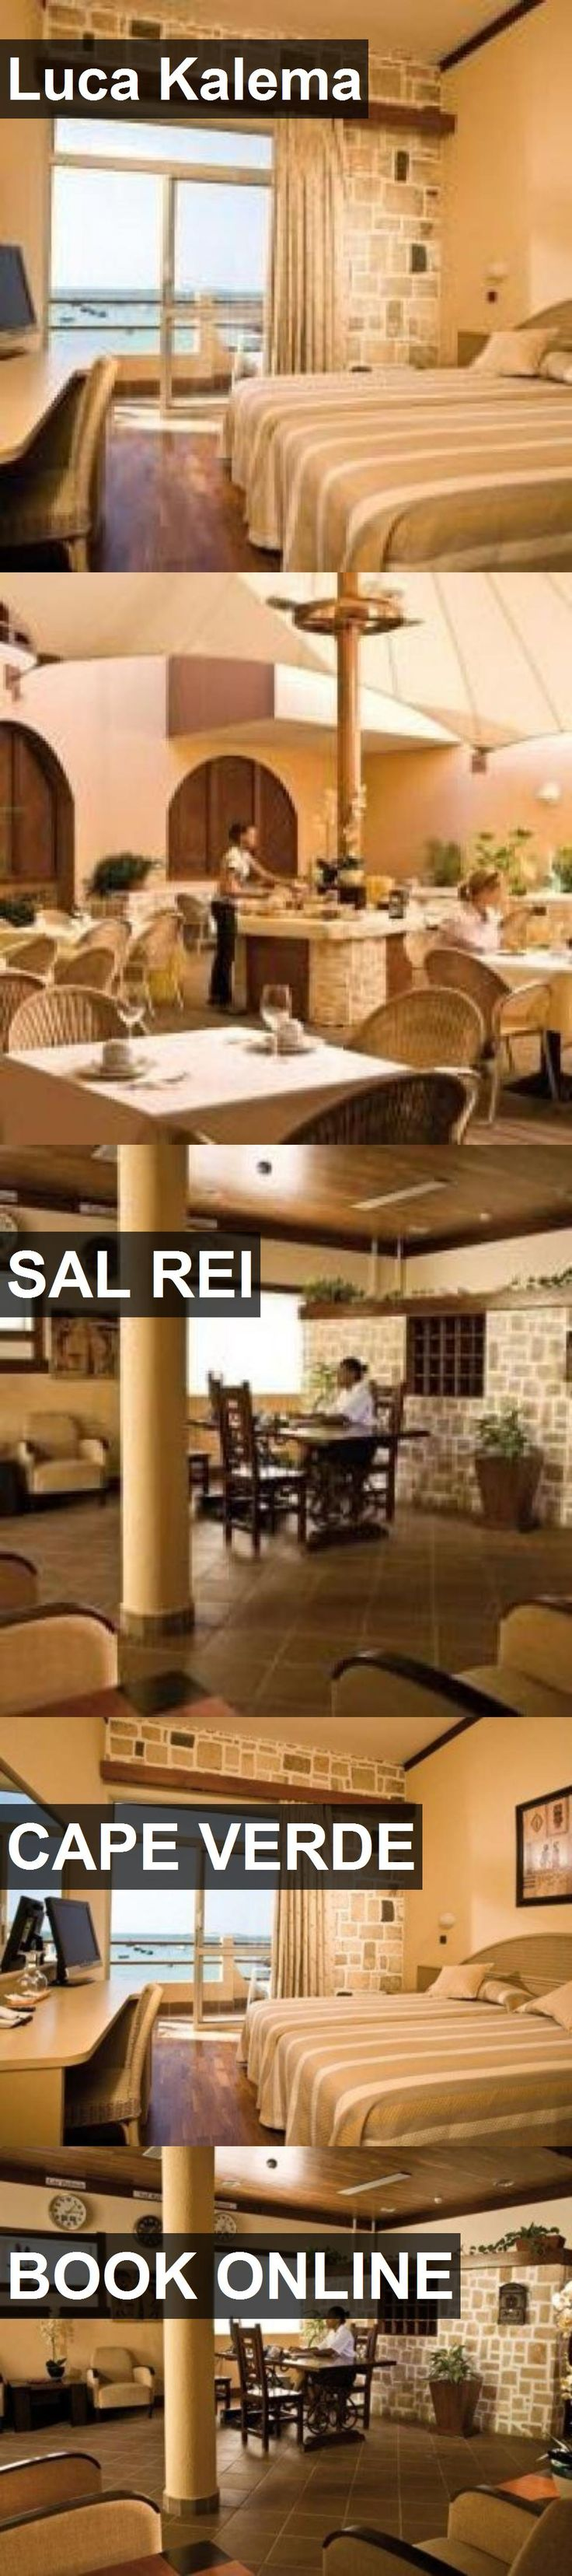 Hotel Luca Kalema in Sal Rei, Cape Verde. For more information, photos, reviews and best prices please follow the link. #CapeVerde #SalRei #travel #vacation #hotel